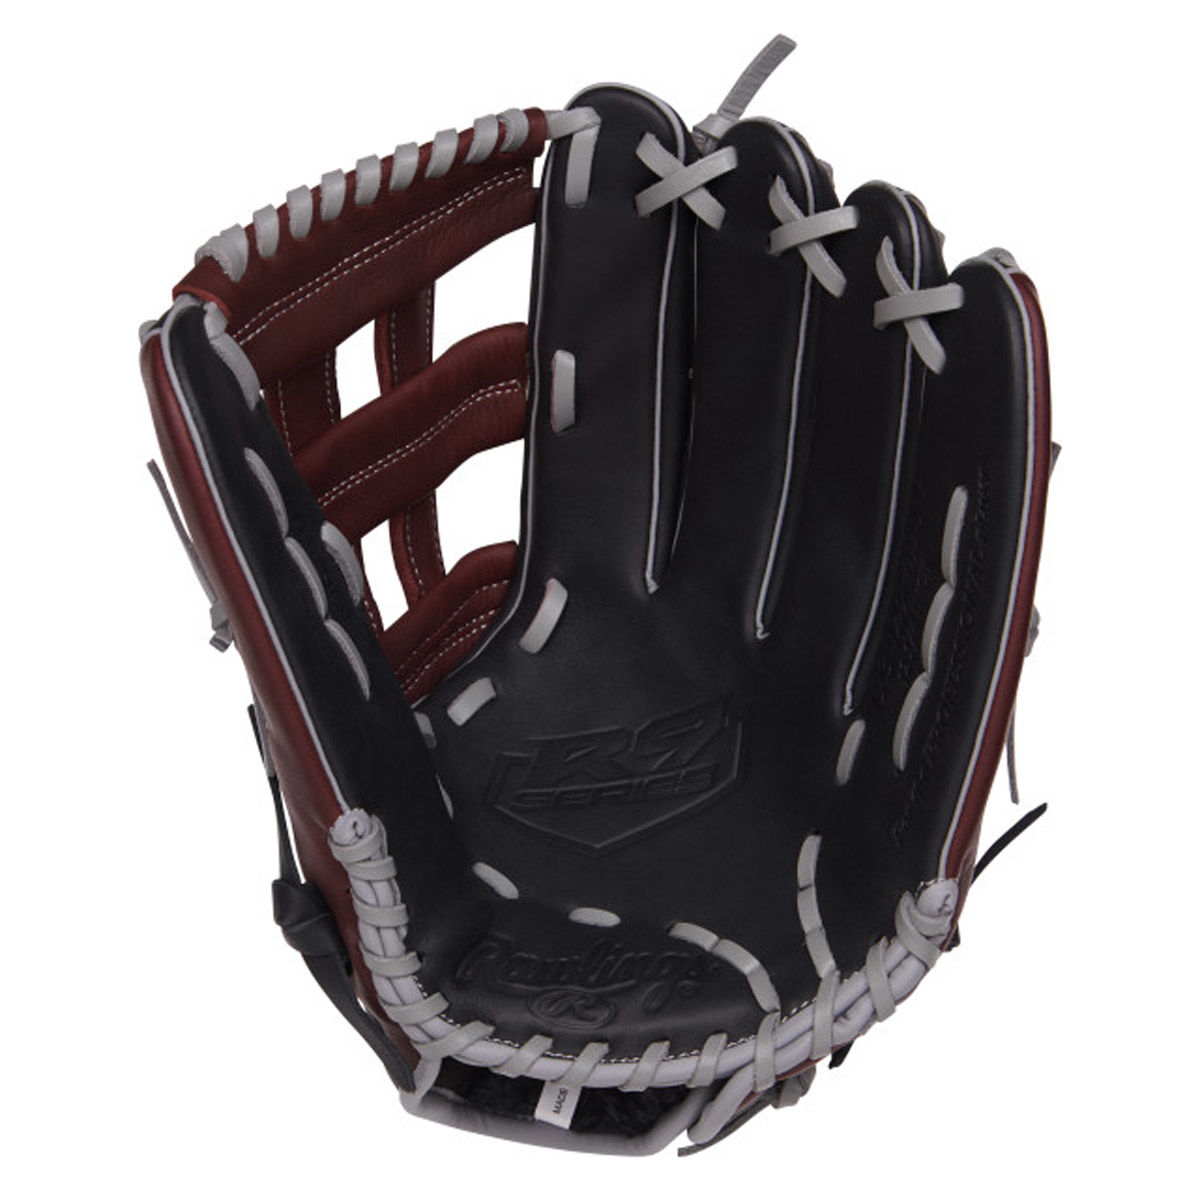 Rawlings R9 Series 12.75 Inch Adult Right Hand Throw Baseball Glove